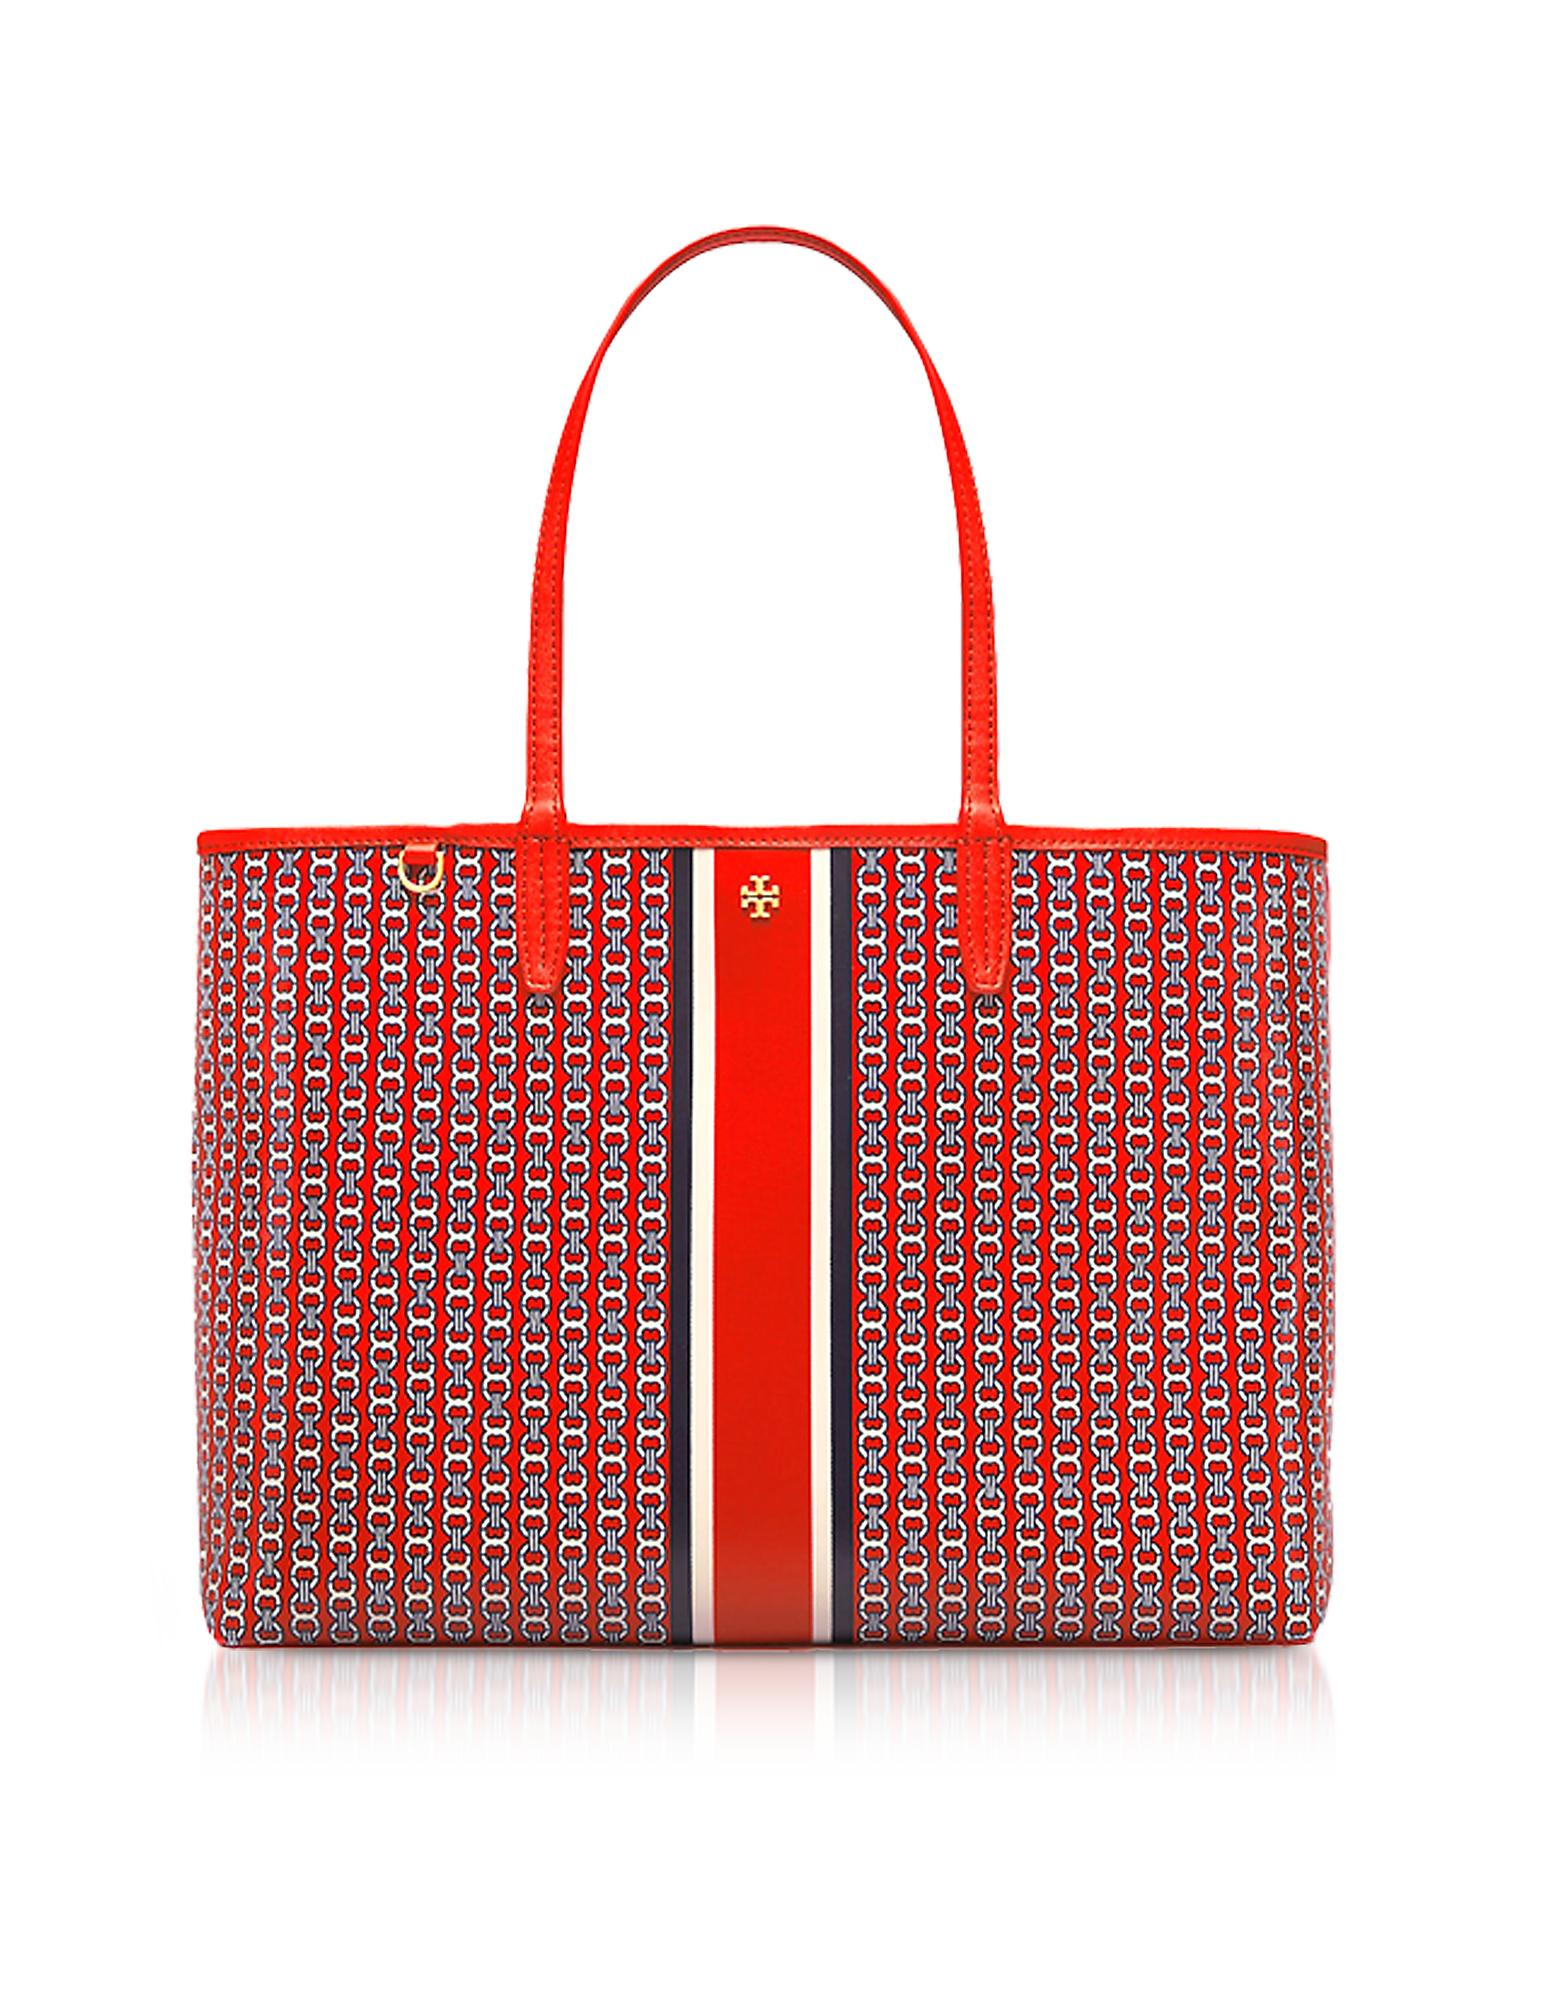 a378059d7 Tory Burch Exotic Red Gemini Link Stripe Canvas Tote Bag in Red - Lyst